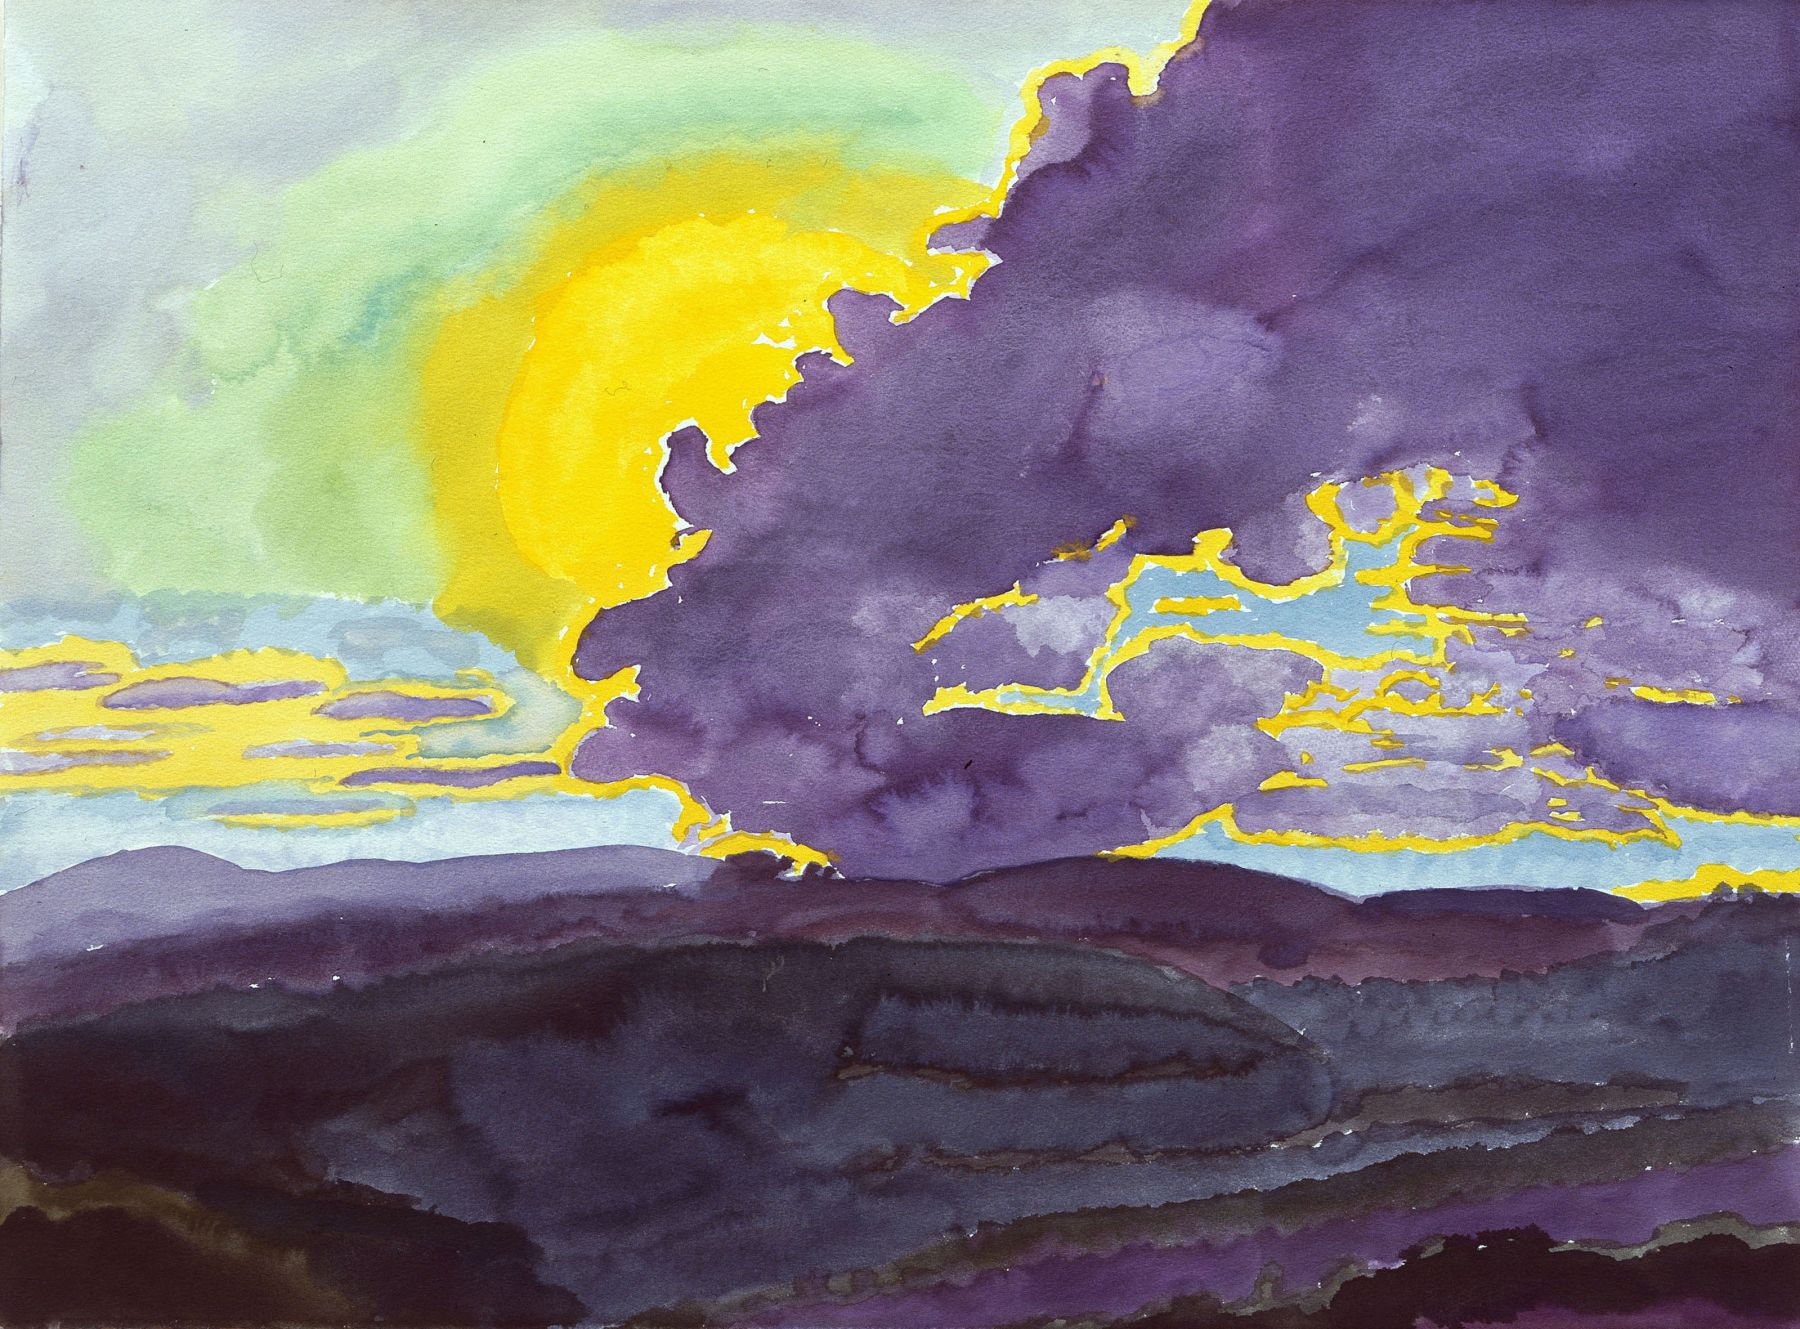 Graham Nickson, Sarageto VIII, 2008    Watercolor on paper 22 x 30 inches